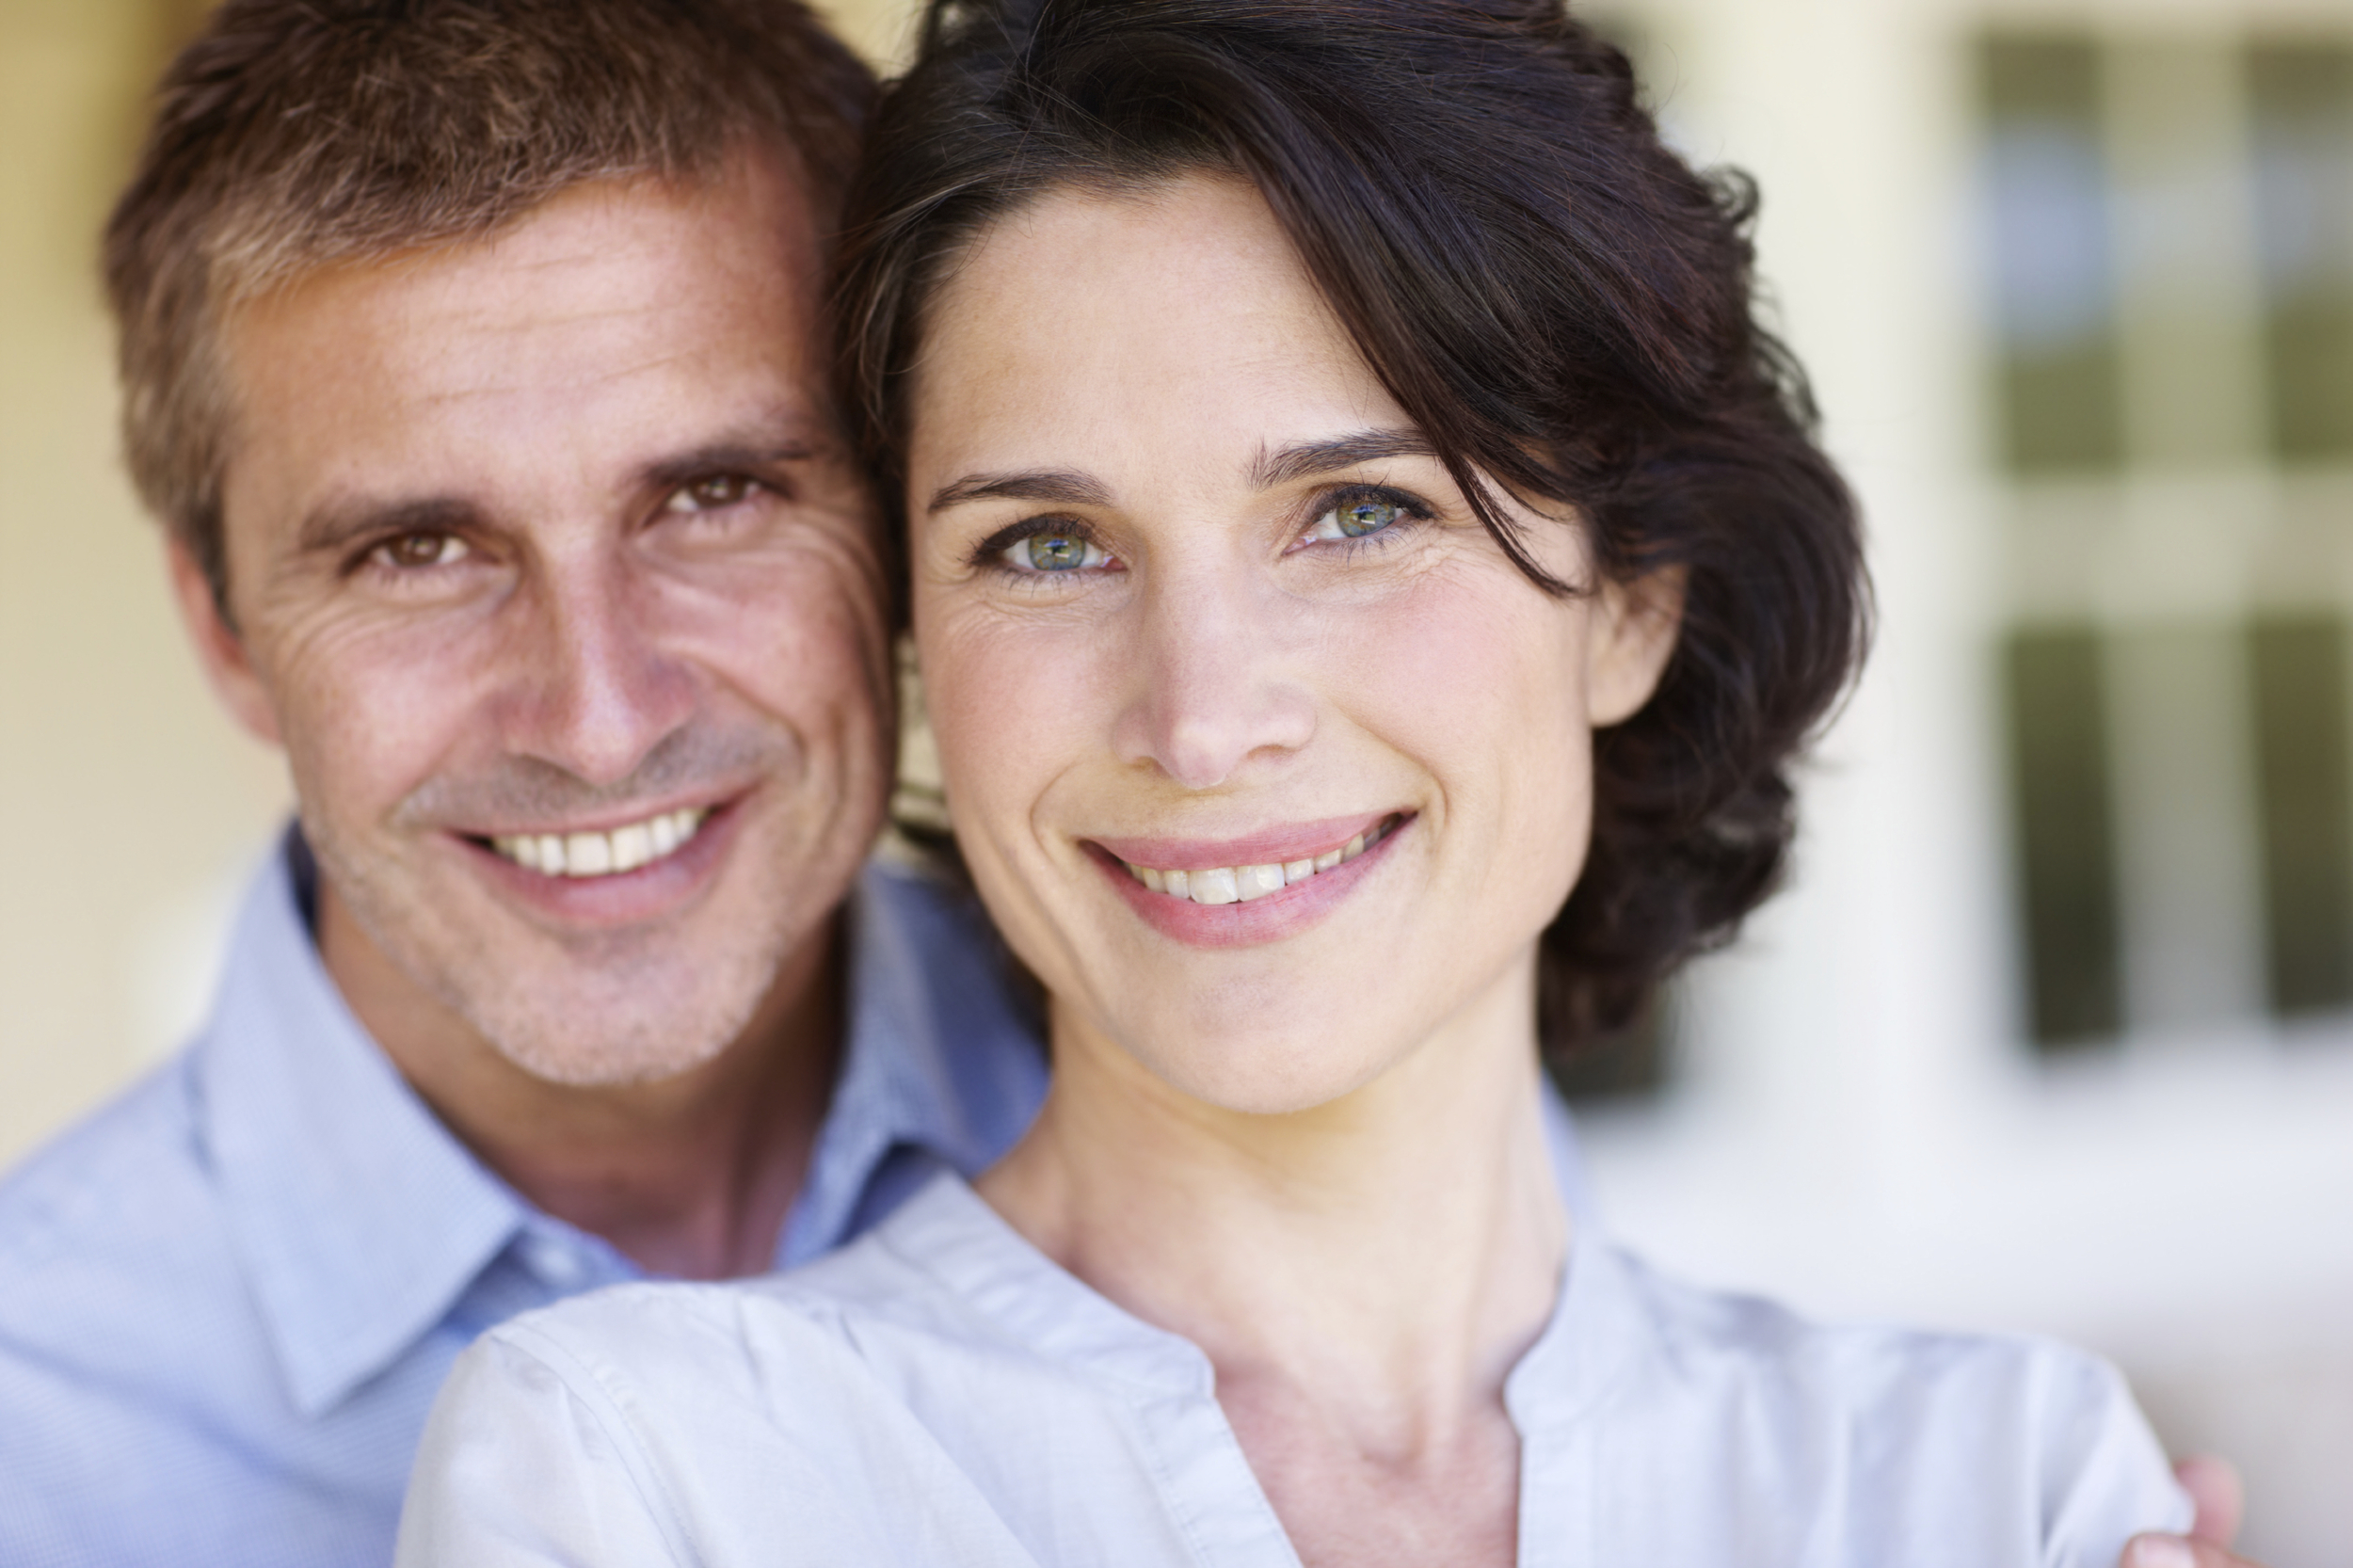 Dr. Barker can give you an evaluation to see if a root canal is the best treatment option for you.